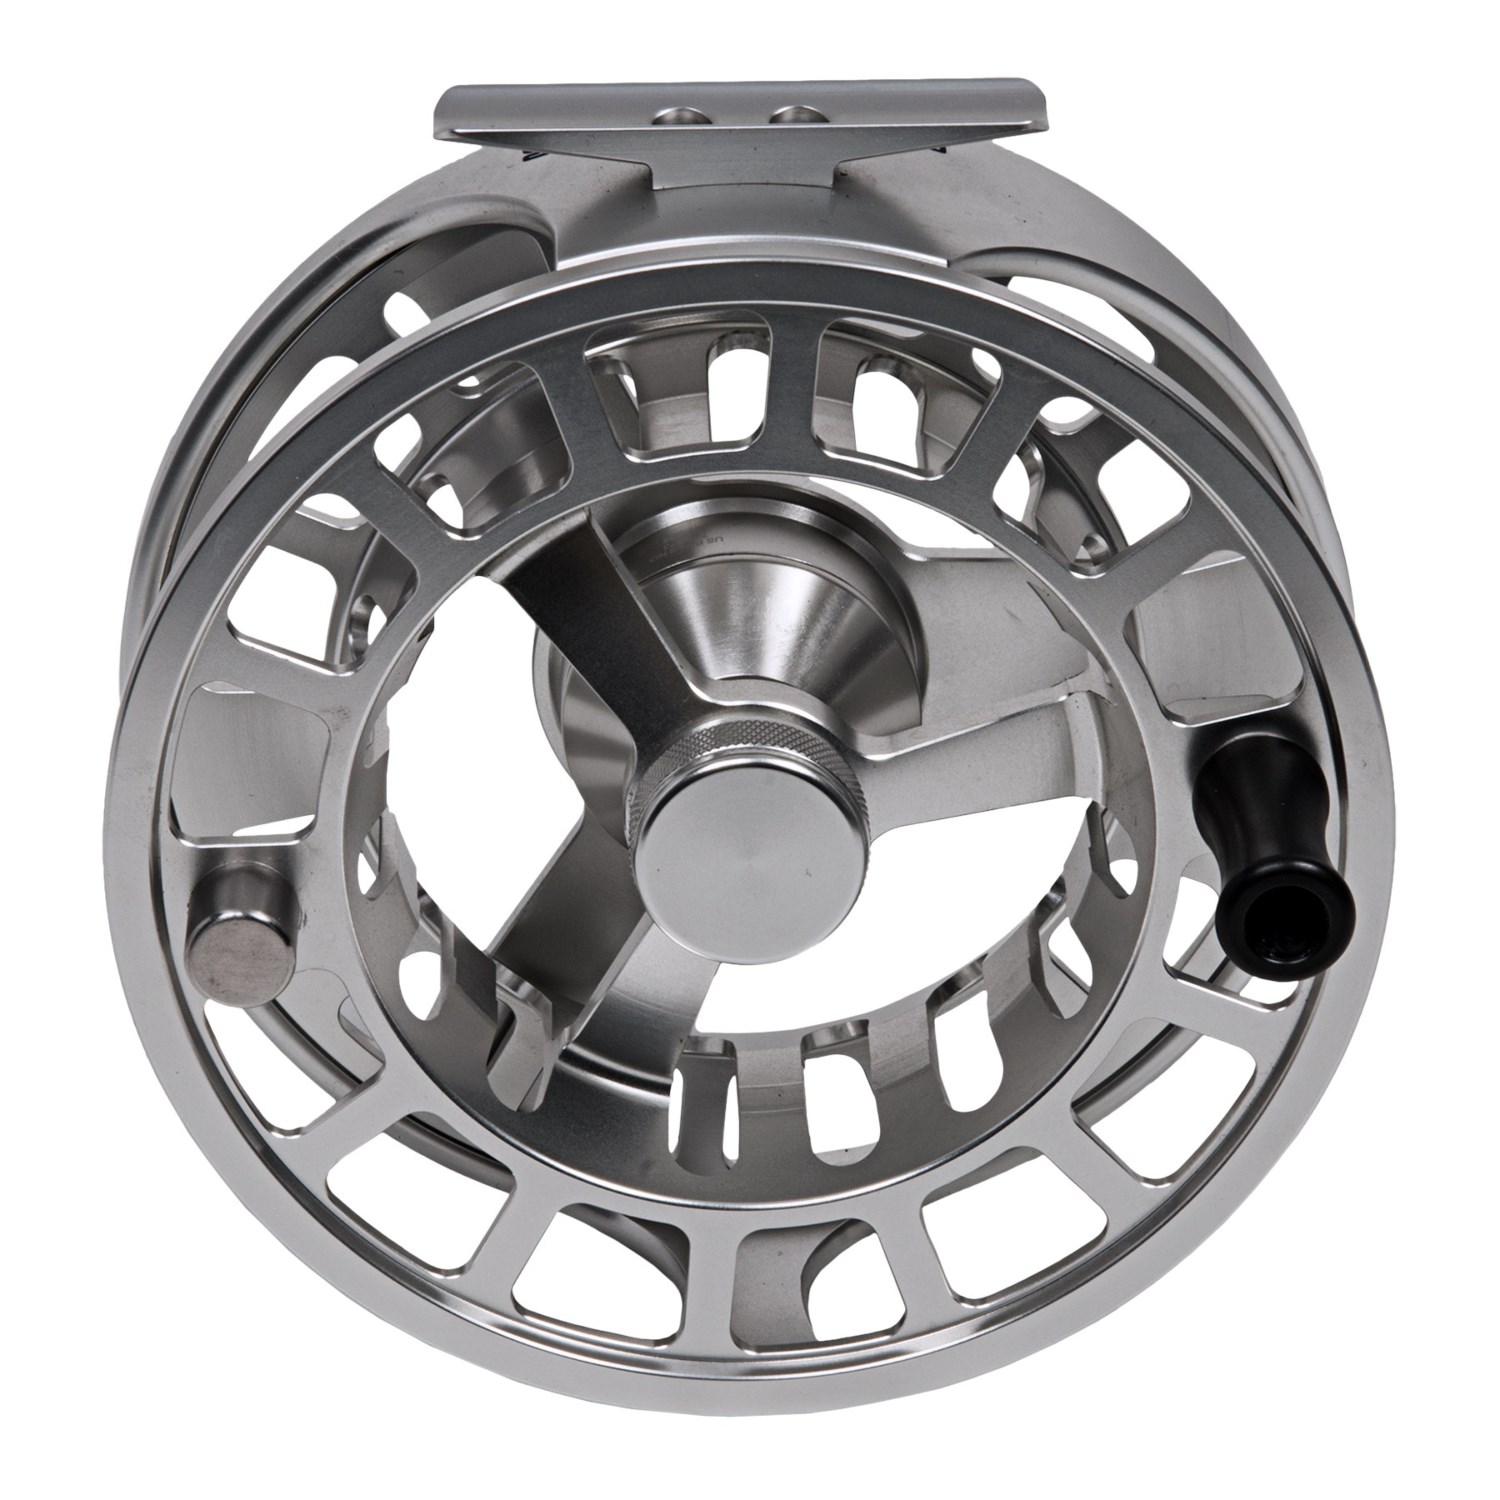 Cheeky fly fishing dozer 525 fly reel 12 16wt 9558k for Cheeky fly fishing